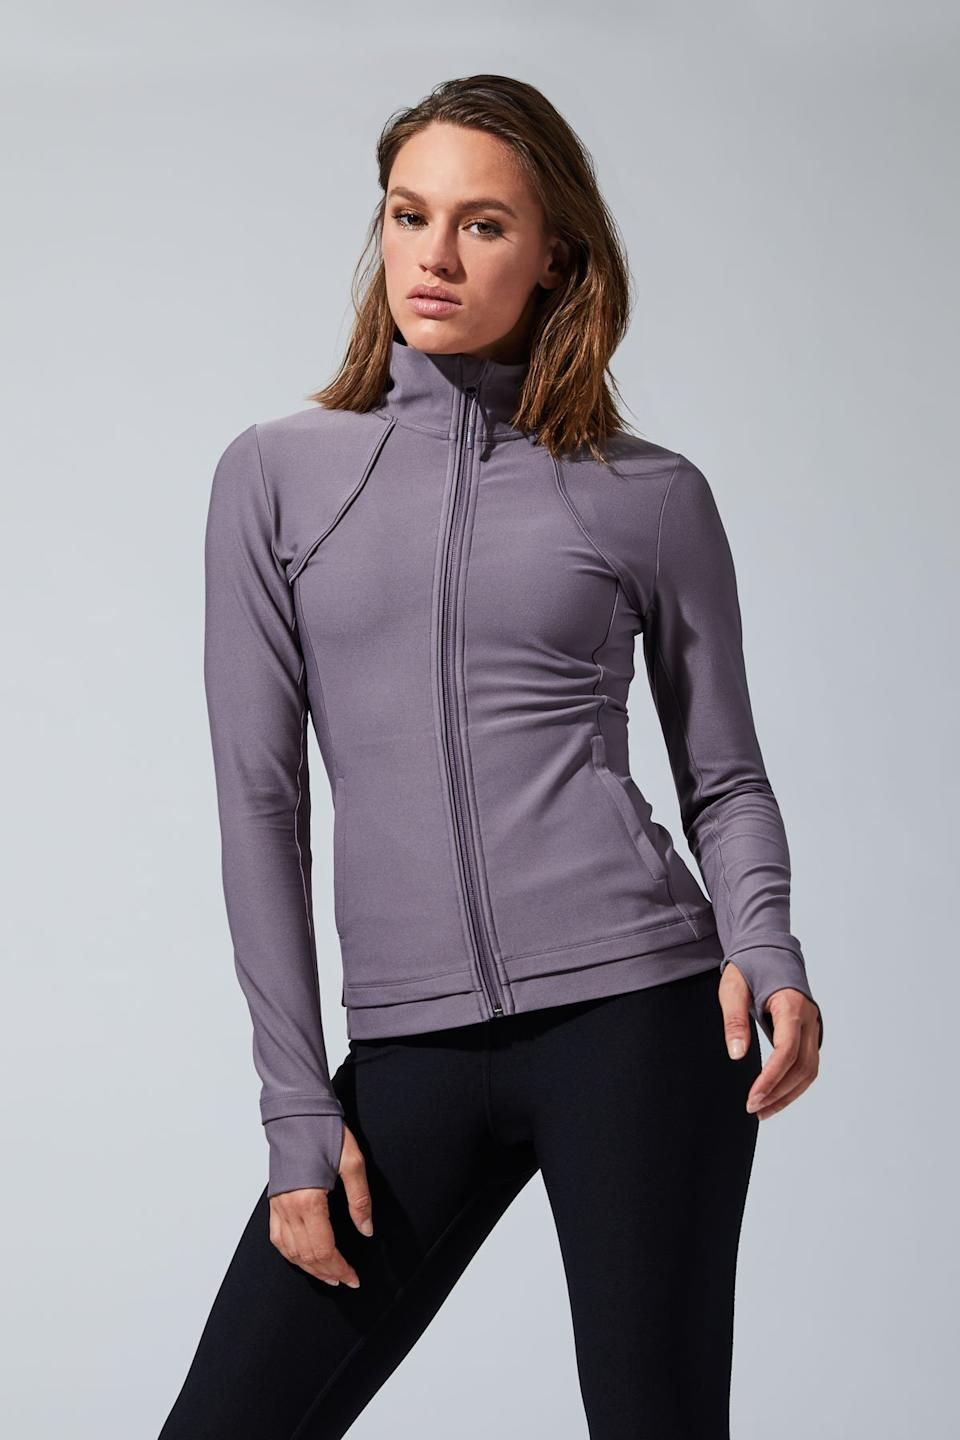 Easy Go Zip-Up - MPG Sport, $35 (originally $58)